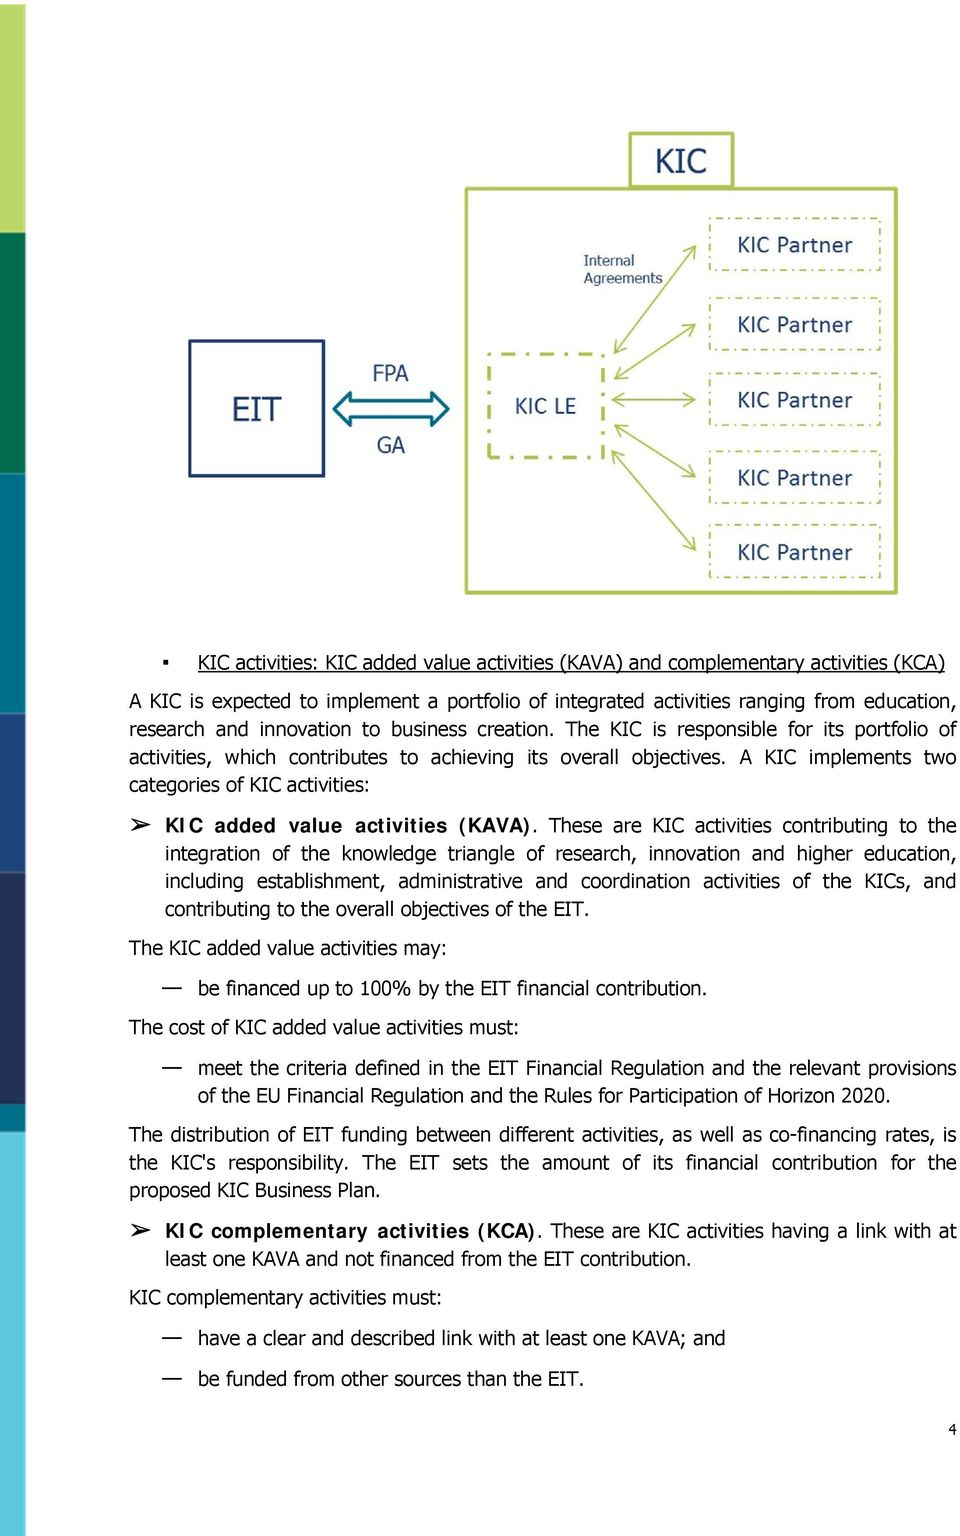 A KIC implements two categories of KIC activities: KIC added value activities (KAVA).